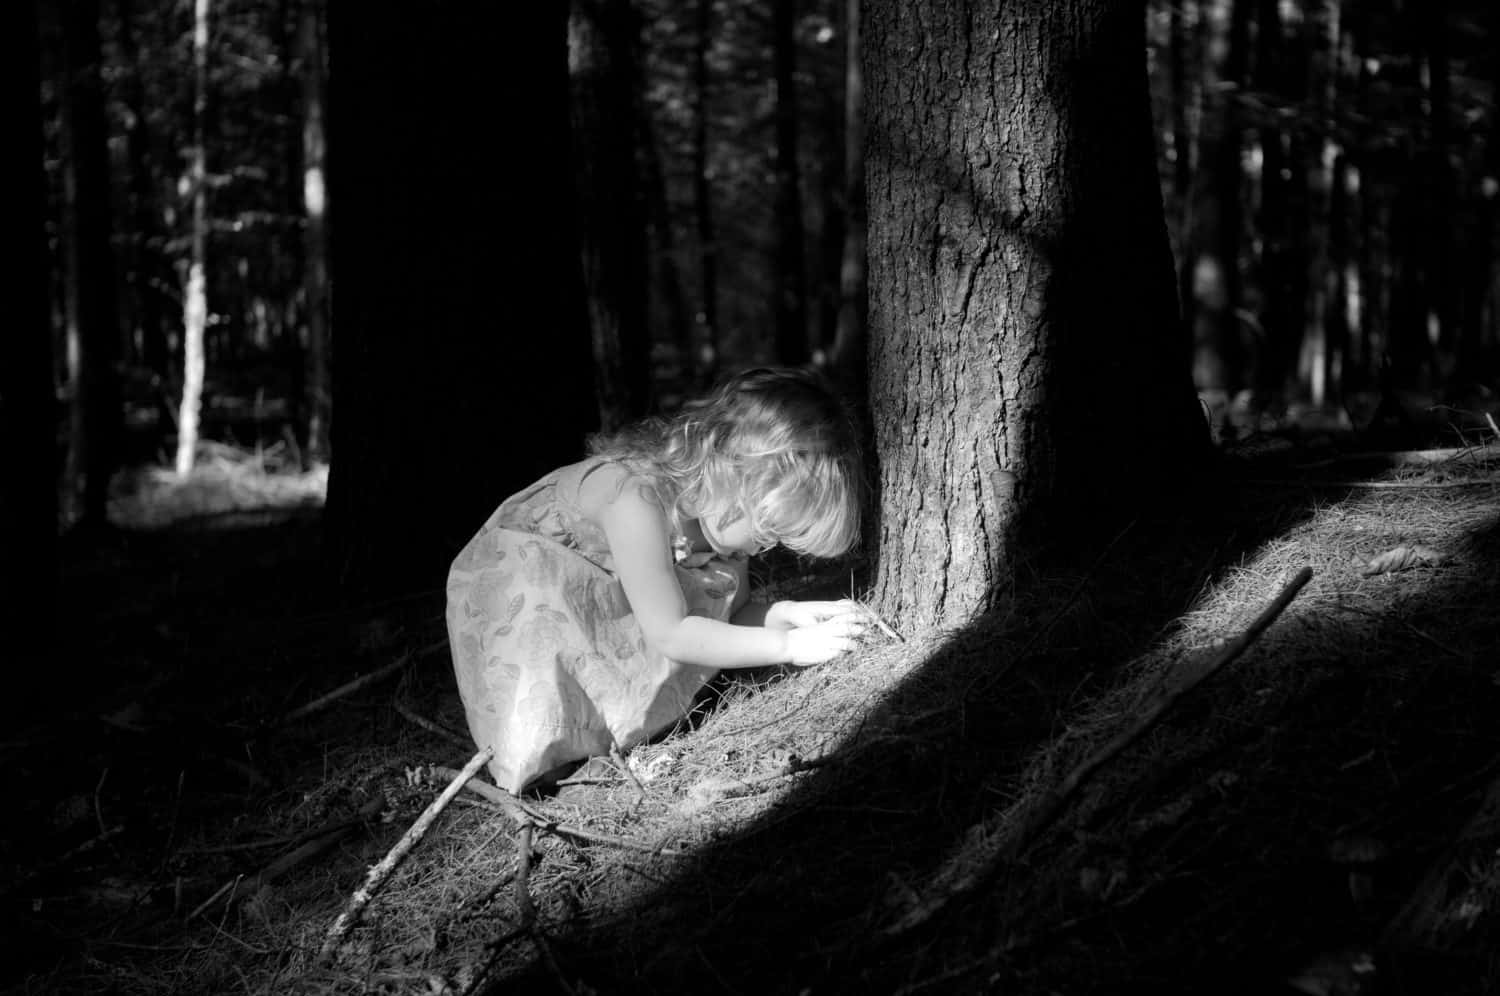 Black and white photo of toddler playing in a sunlit forest